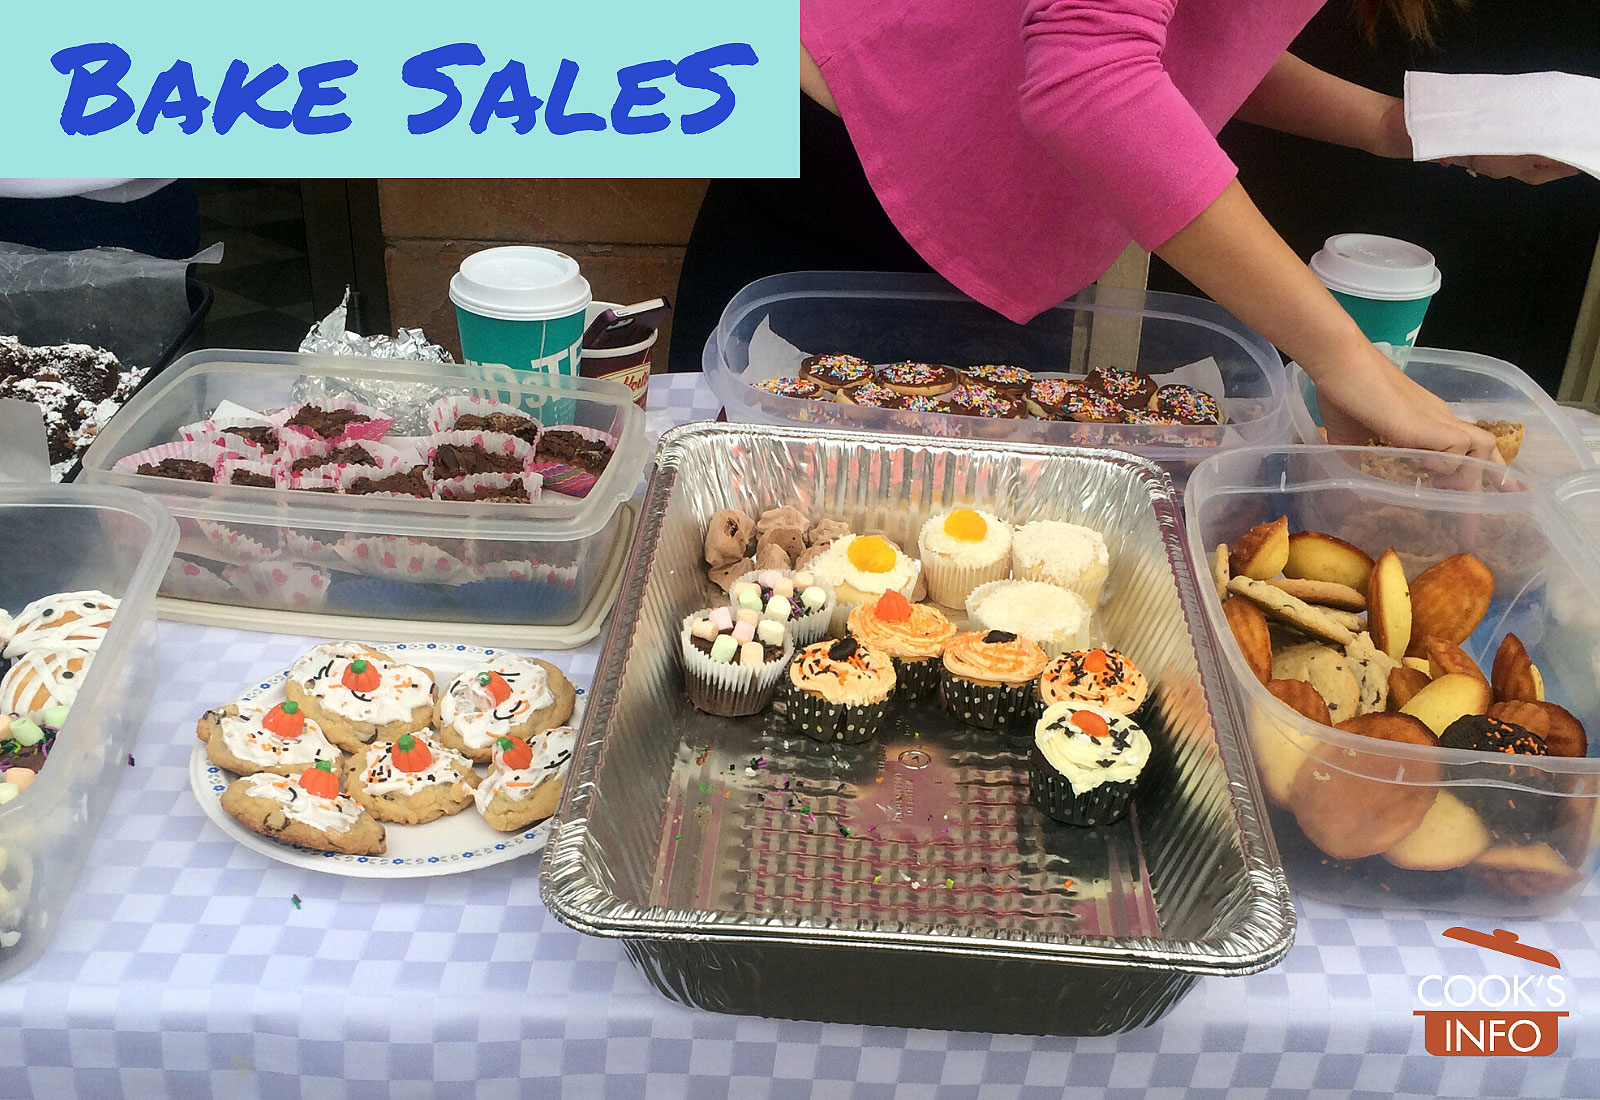 Photo of a table with baked goods for sale on it, woman arranging items